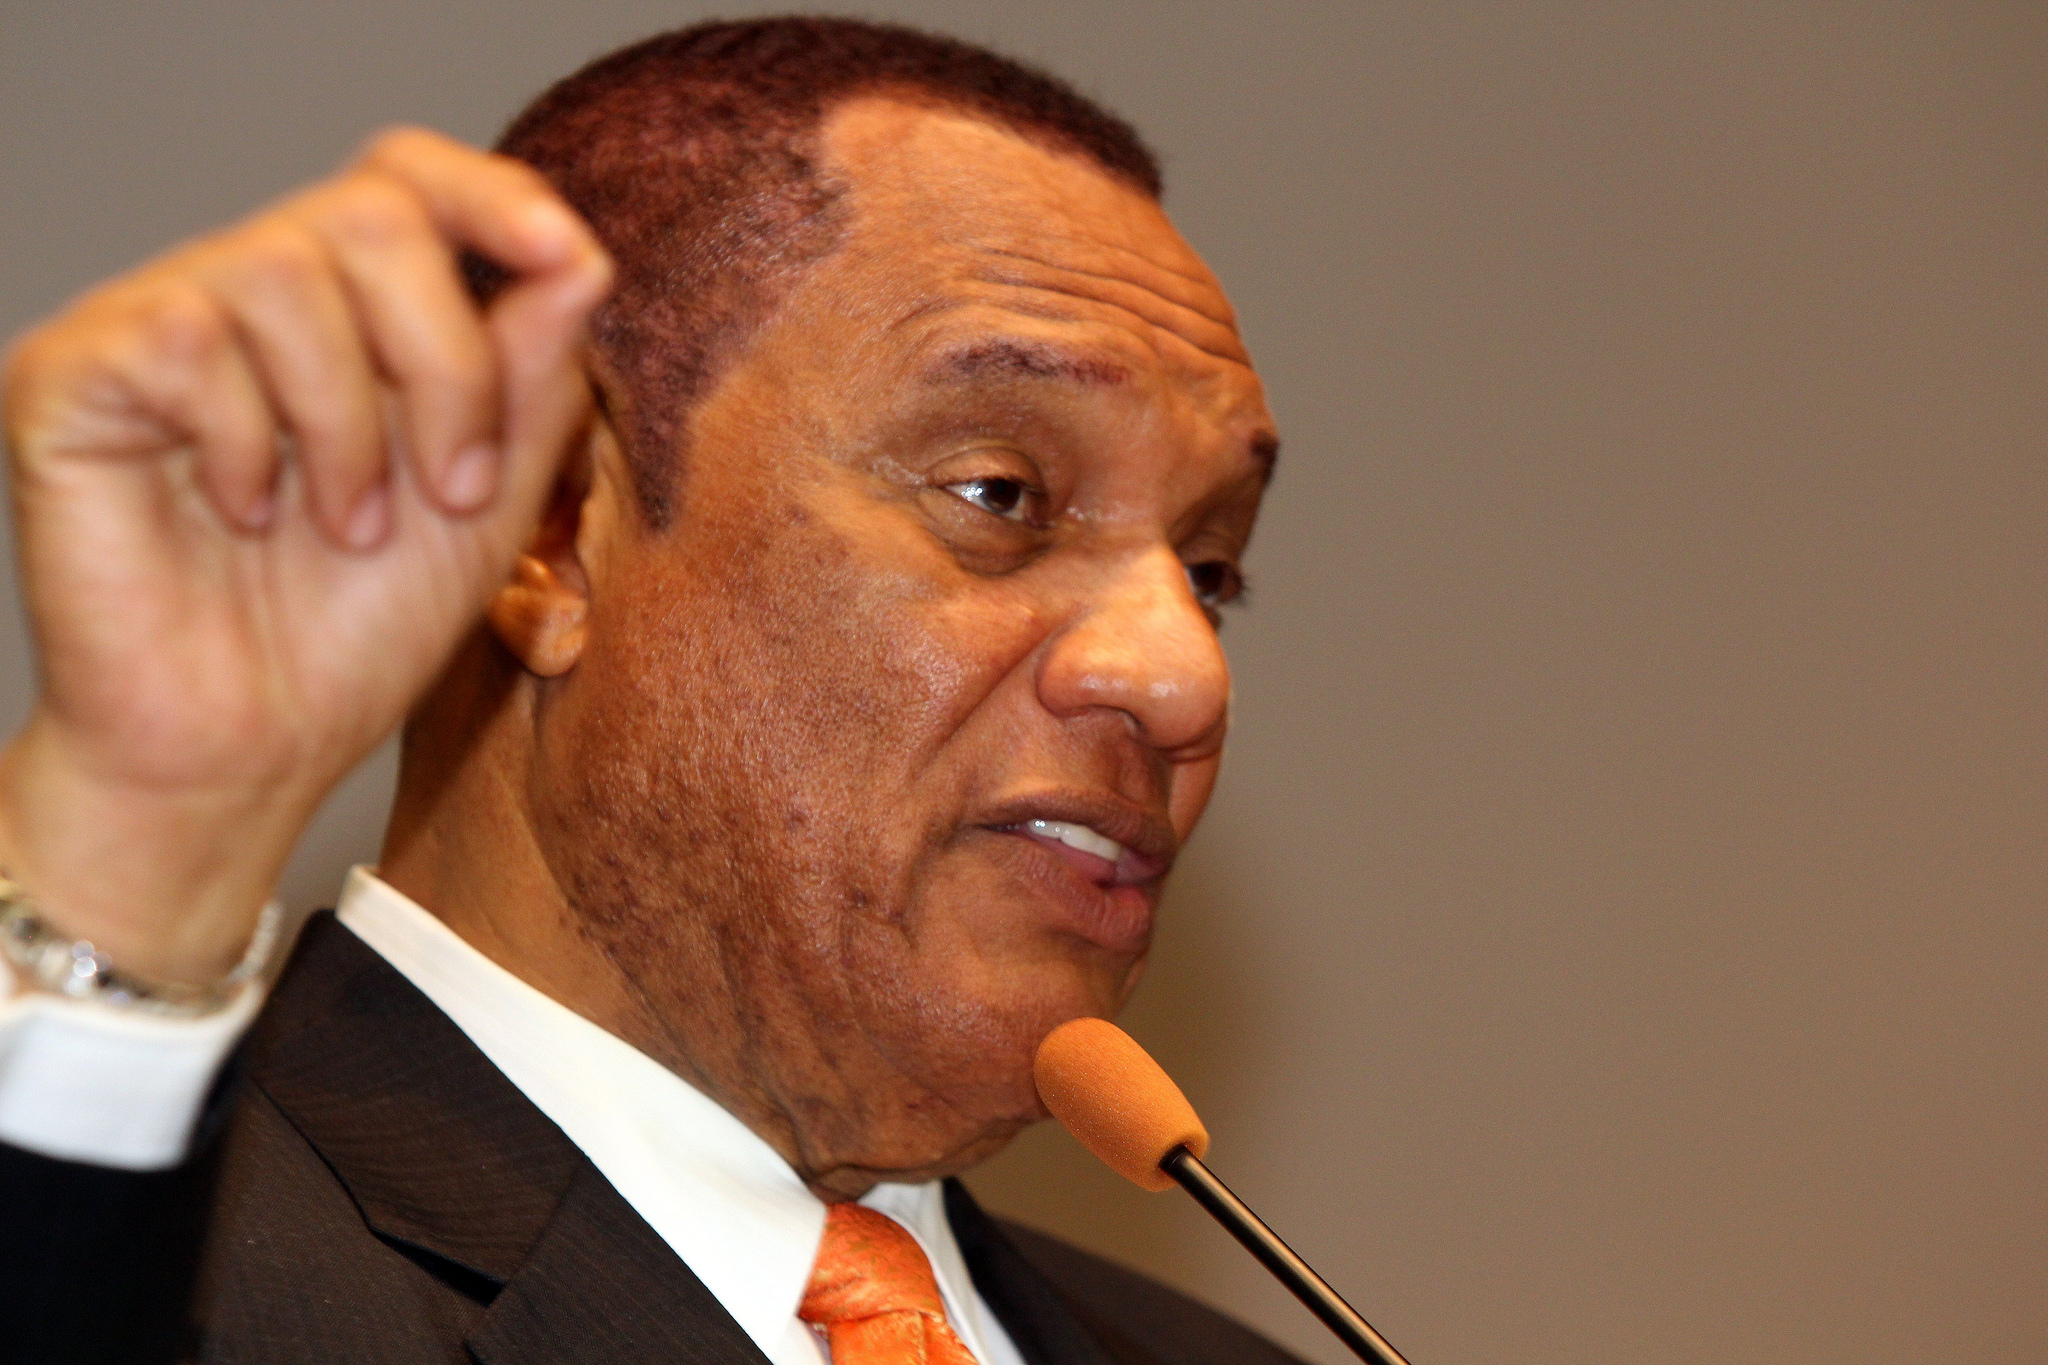 CARICOM Chairman, Prime Minister of The Bahamas, Rt. Hon. Perry Christie